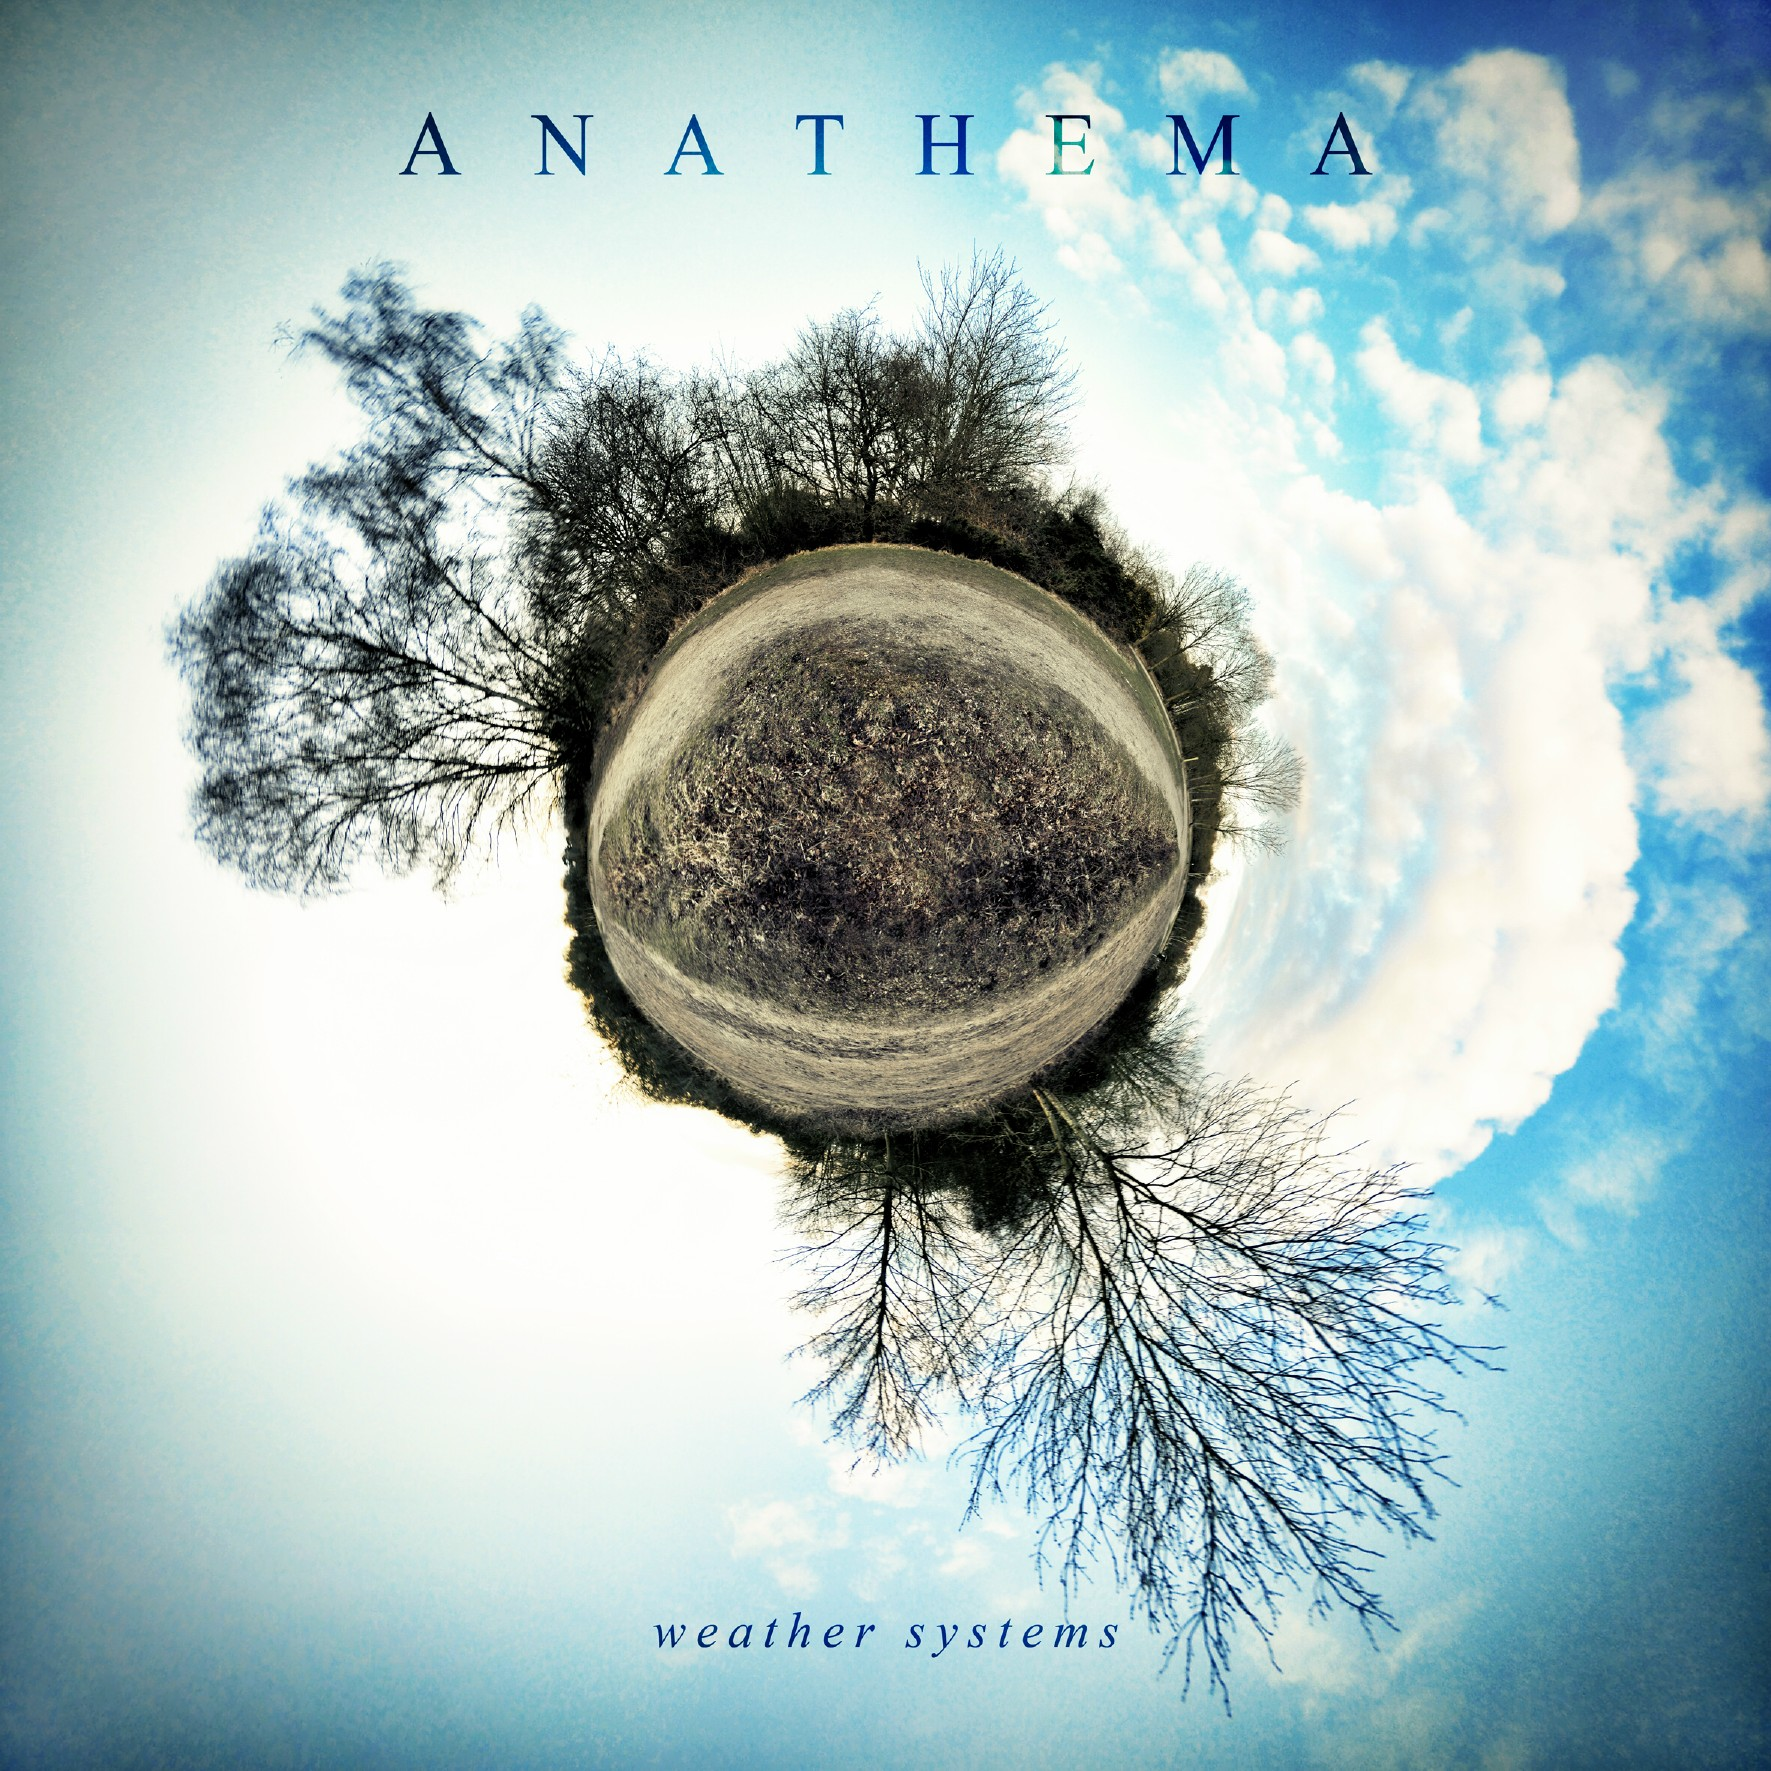 Efemérides - Página 3 Anathema-Weather-Systems